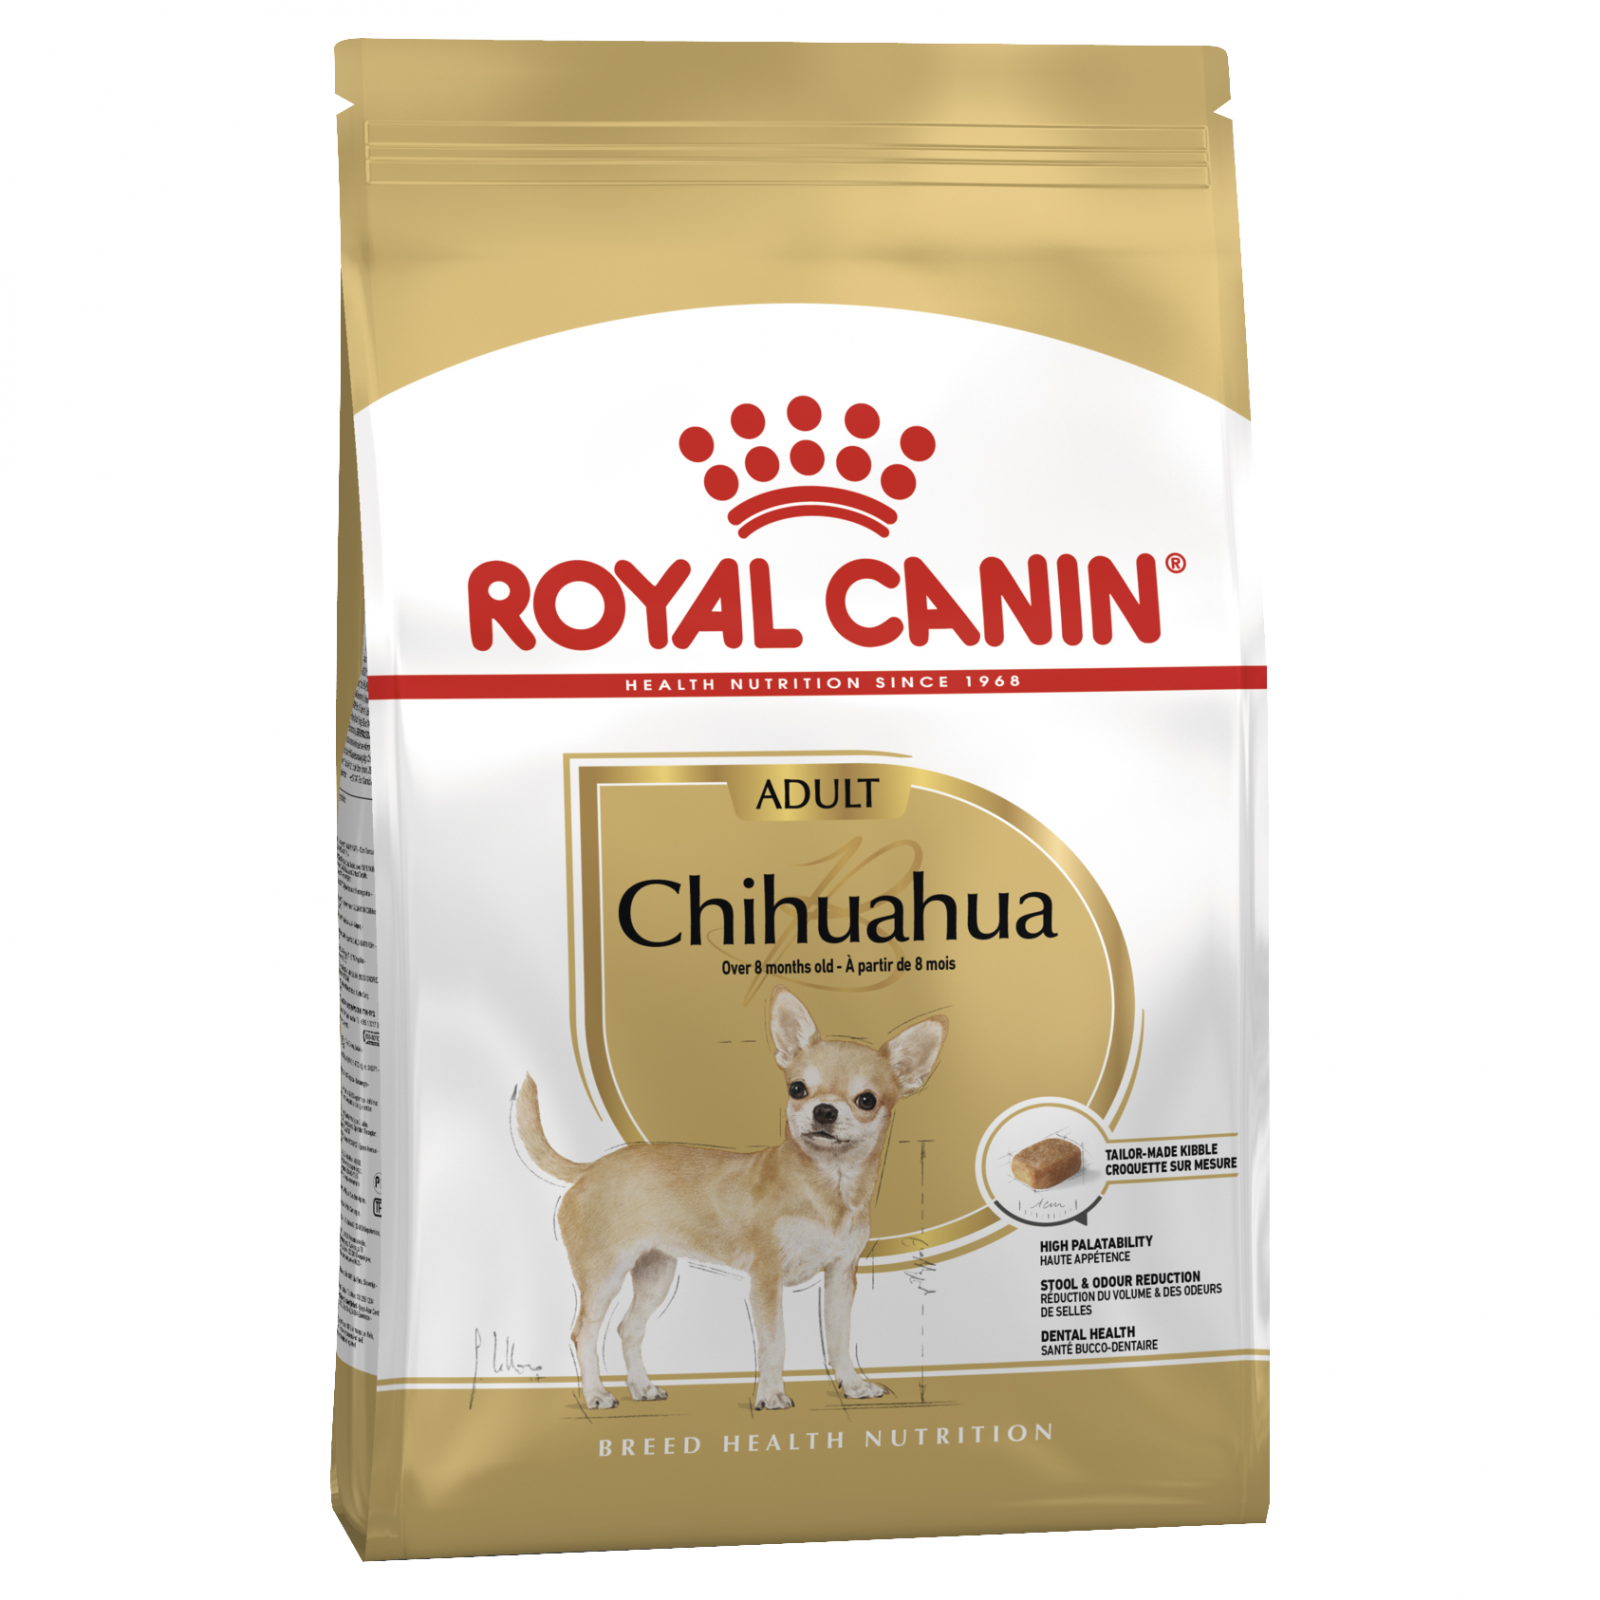 Royal Canin Royal Canin Chihuahua